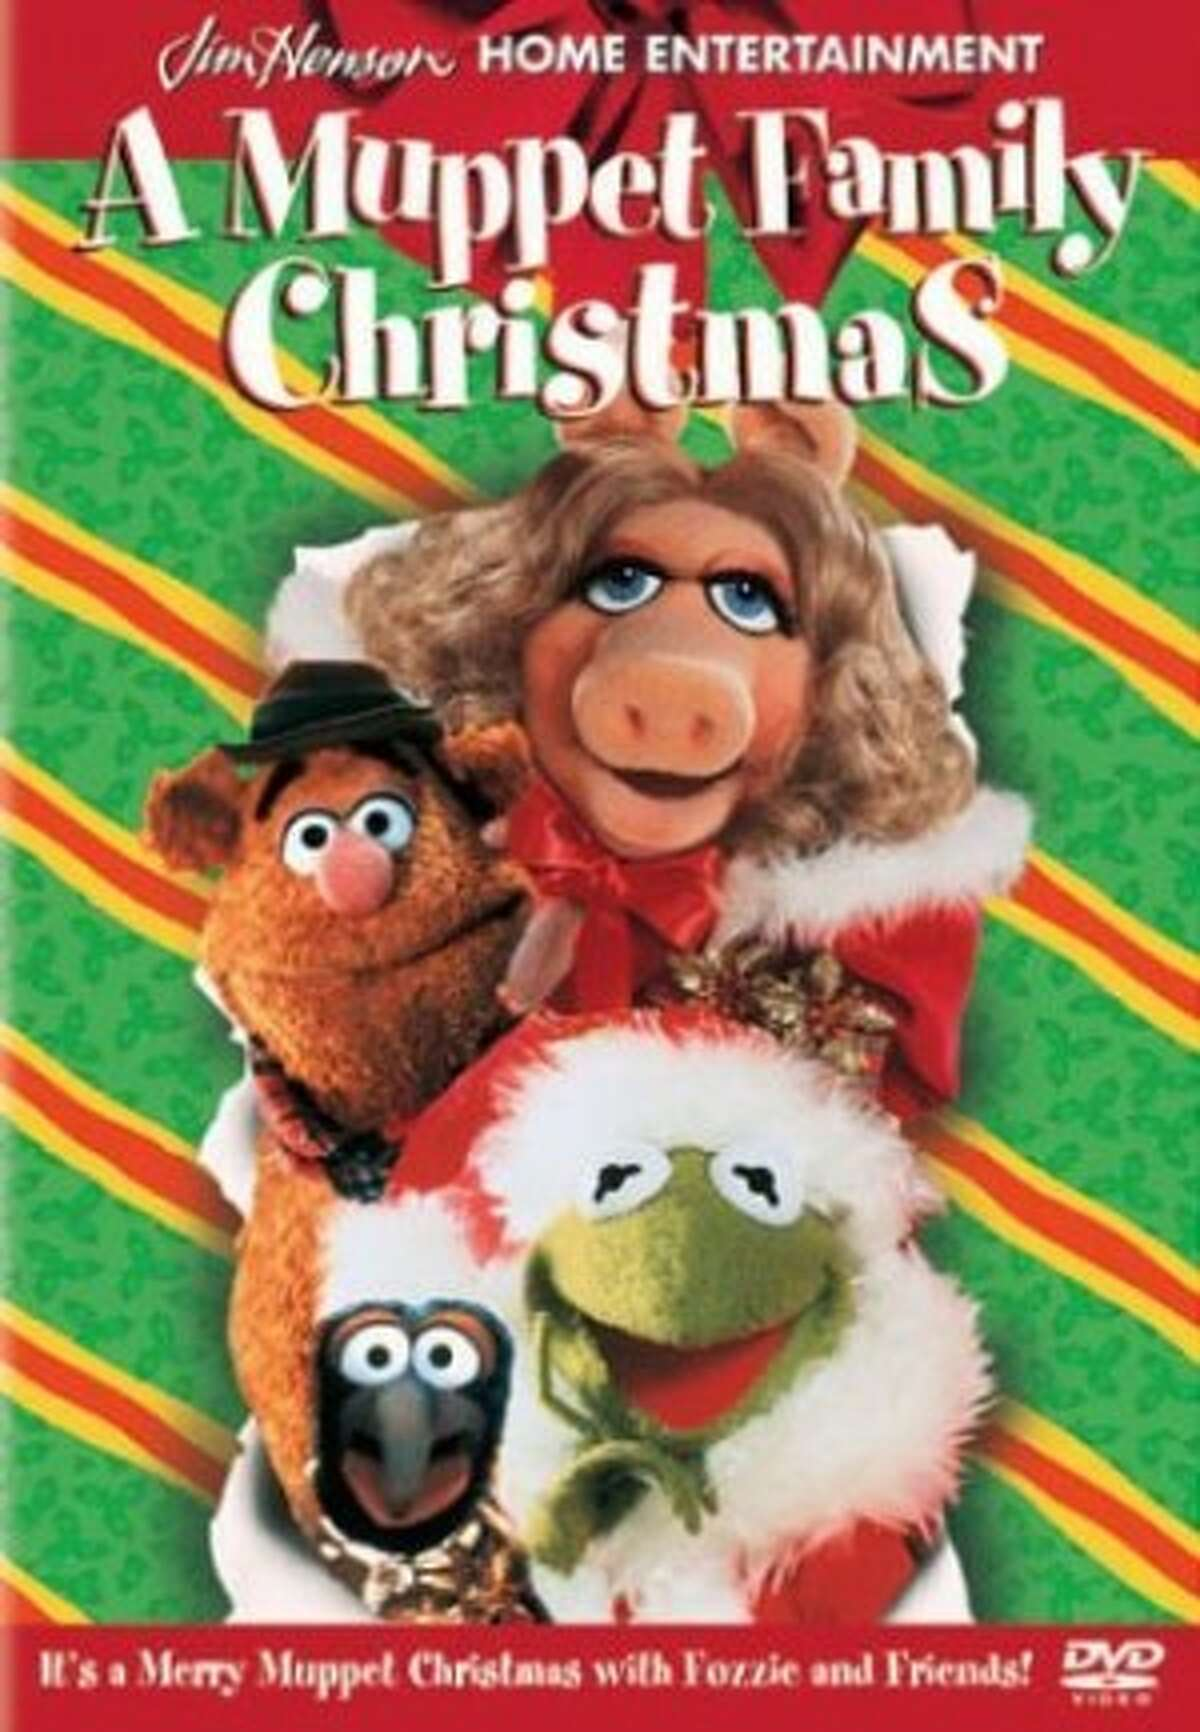 A Muppet Family Christmas DVD